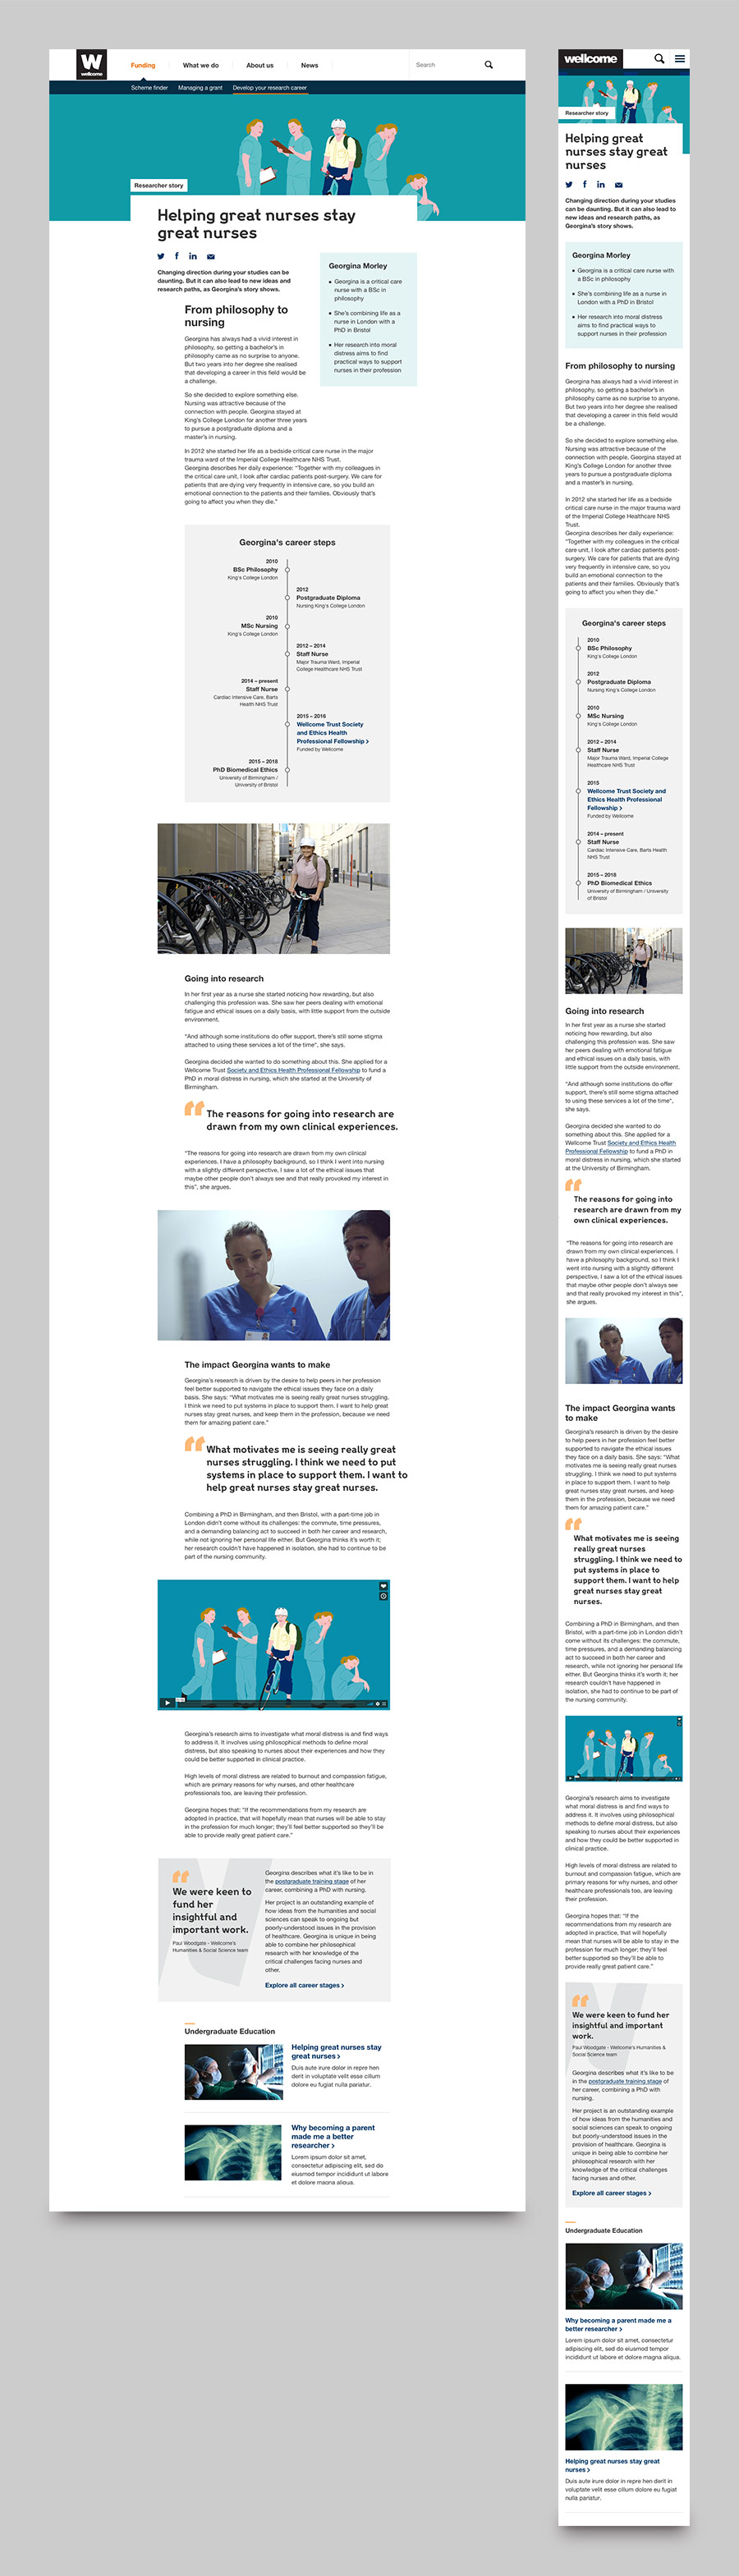 Responsive design for The Wellcome Trust